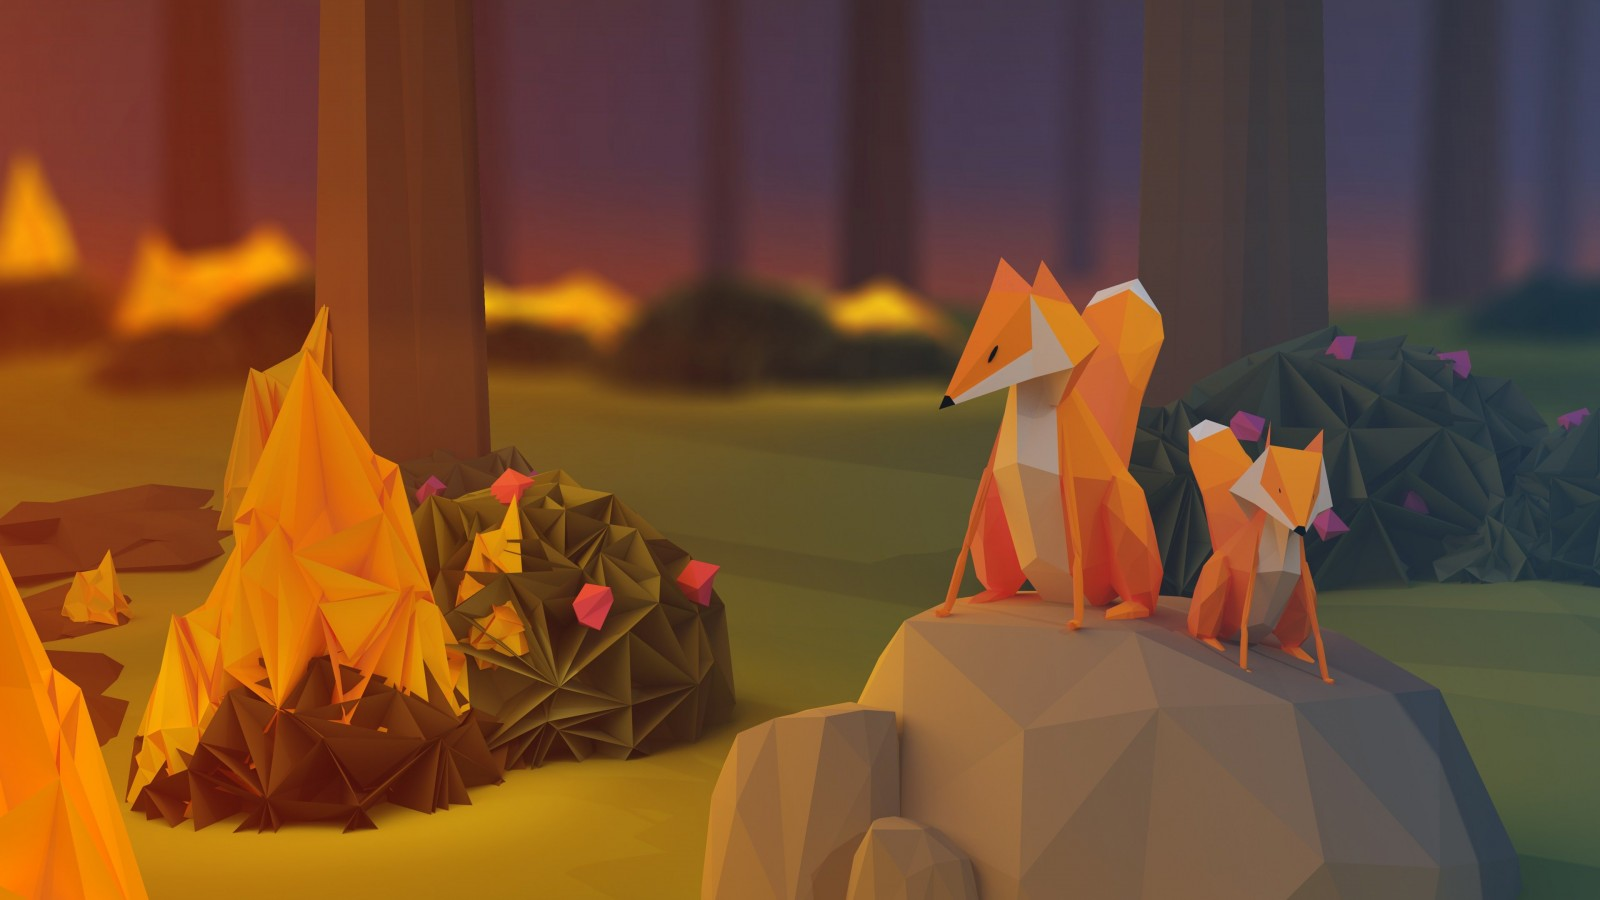 Low Poly Foxes Wallpaper for Desktop 1600x900